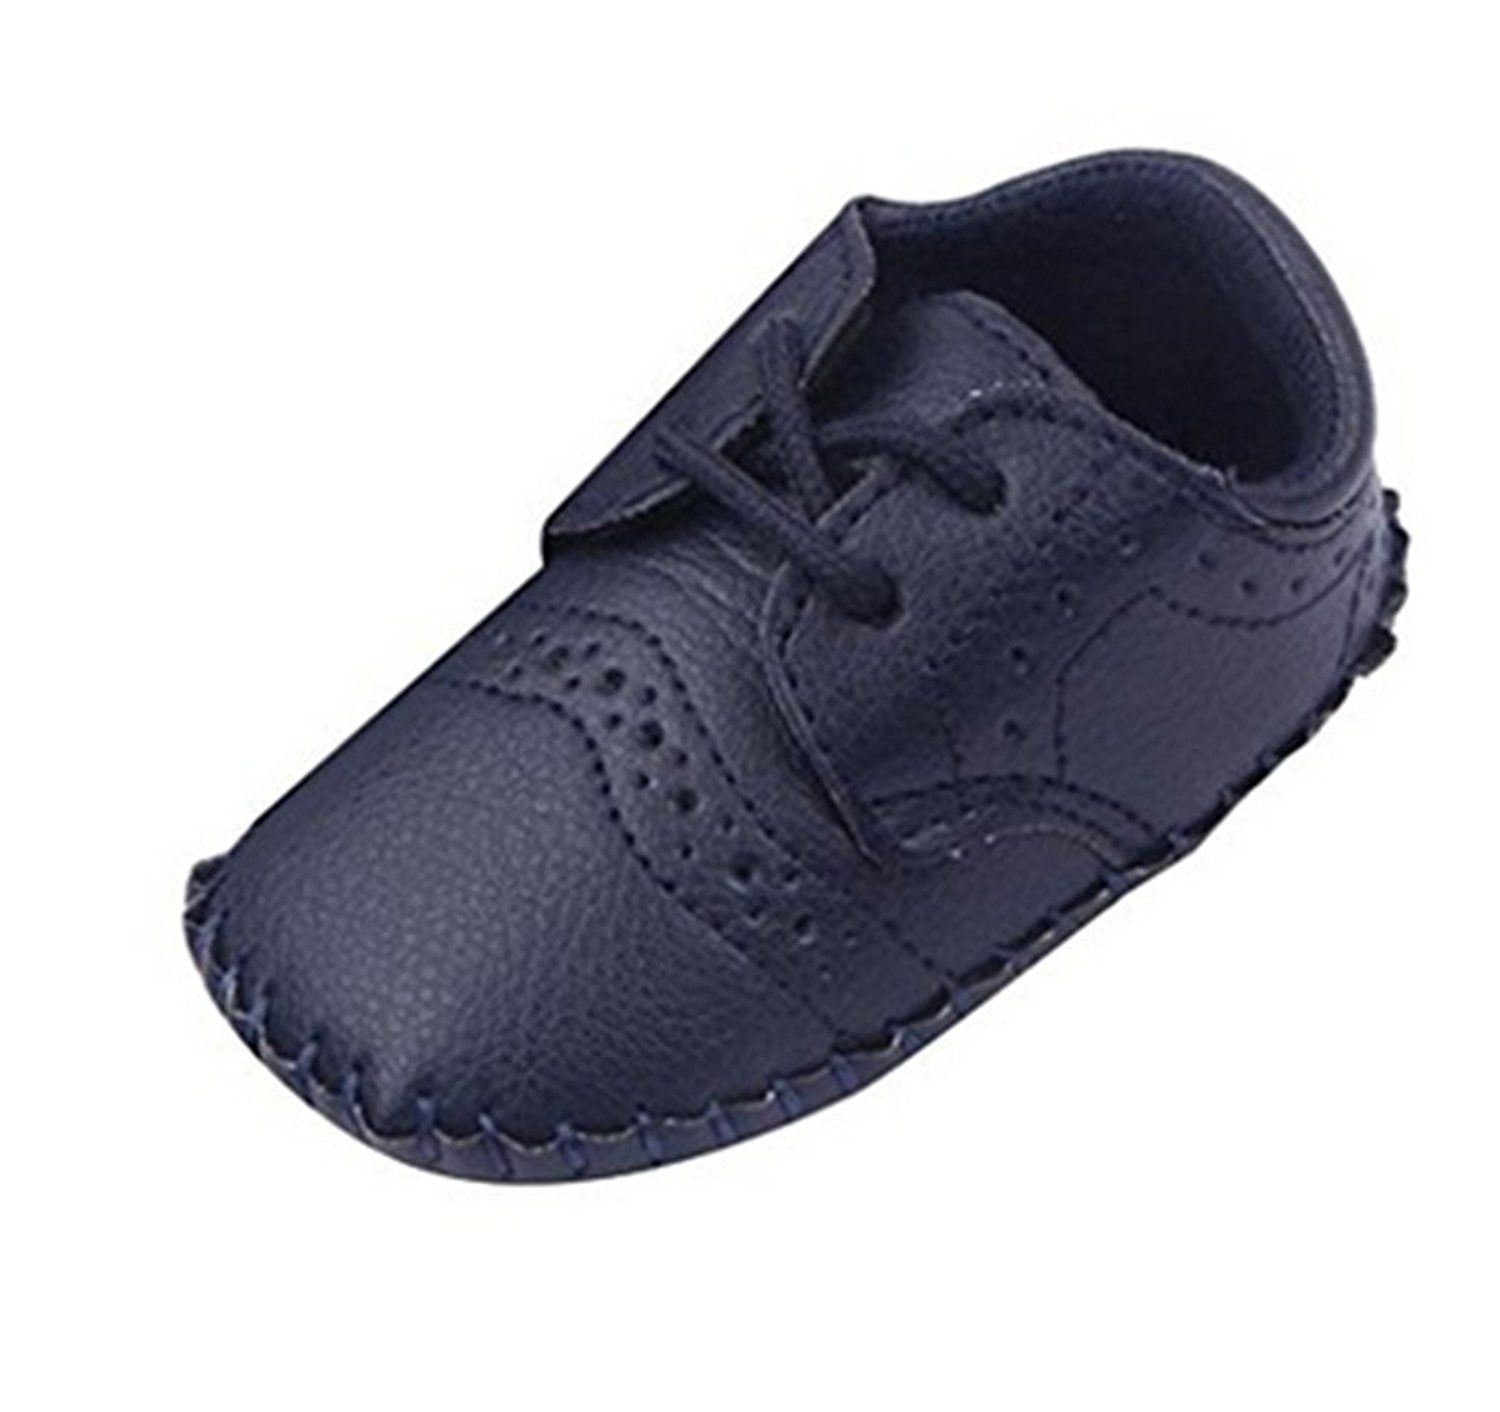 404b1686980db Baby Girl Dress Shoes Amazon | Lixnet AG